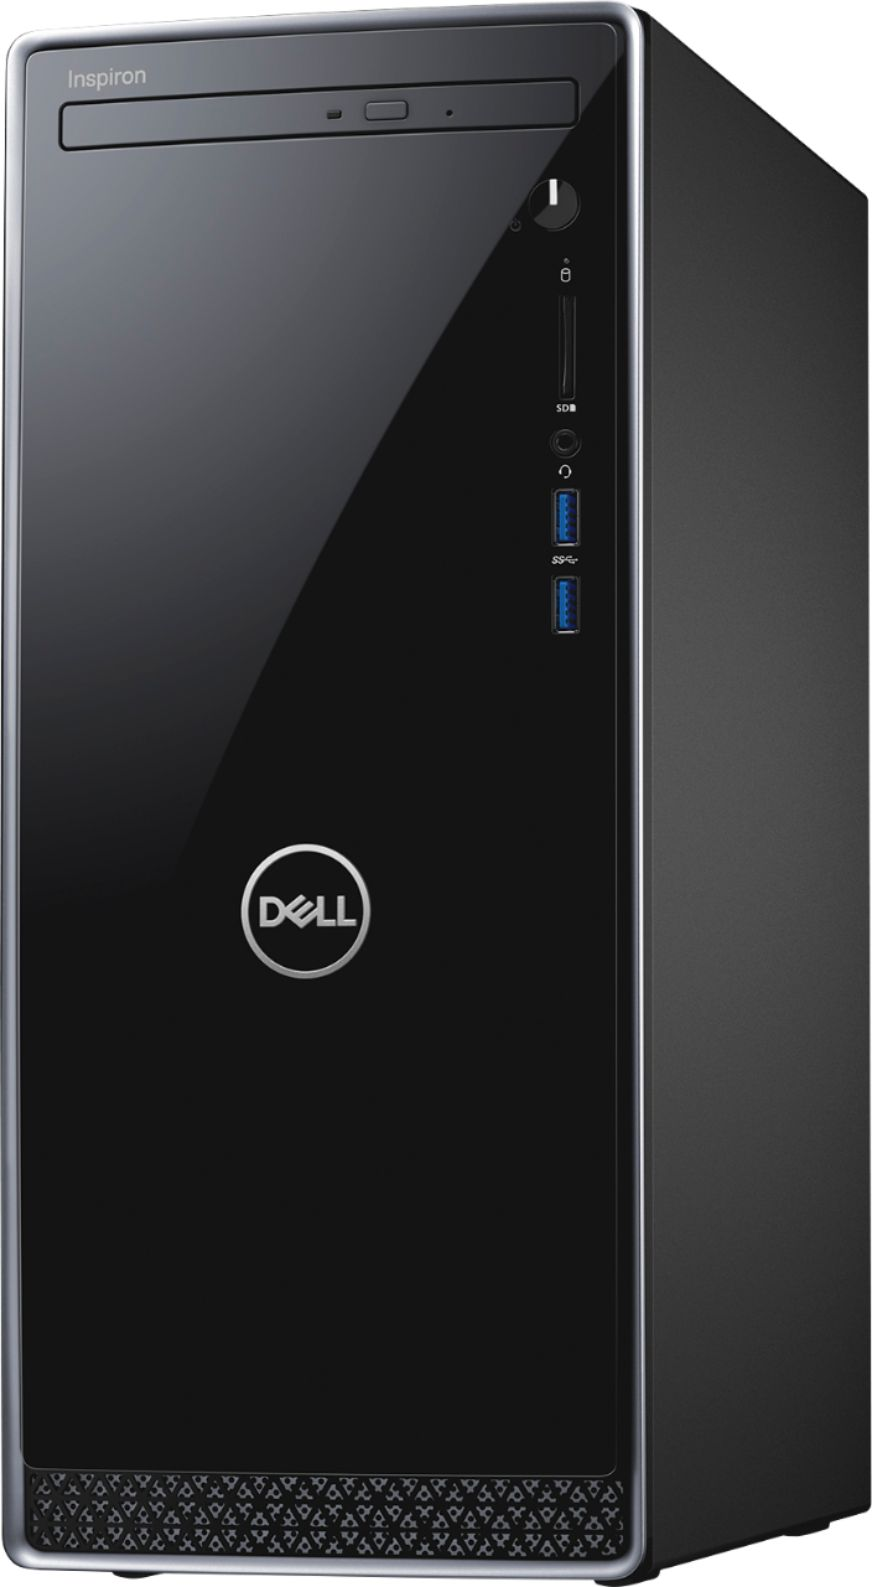 Left Zoom. Dell - Inspiron Desktop - Intel Core i5 - 12GB Memory - 256GB Solid State Drive - Black With Silver Trim.